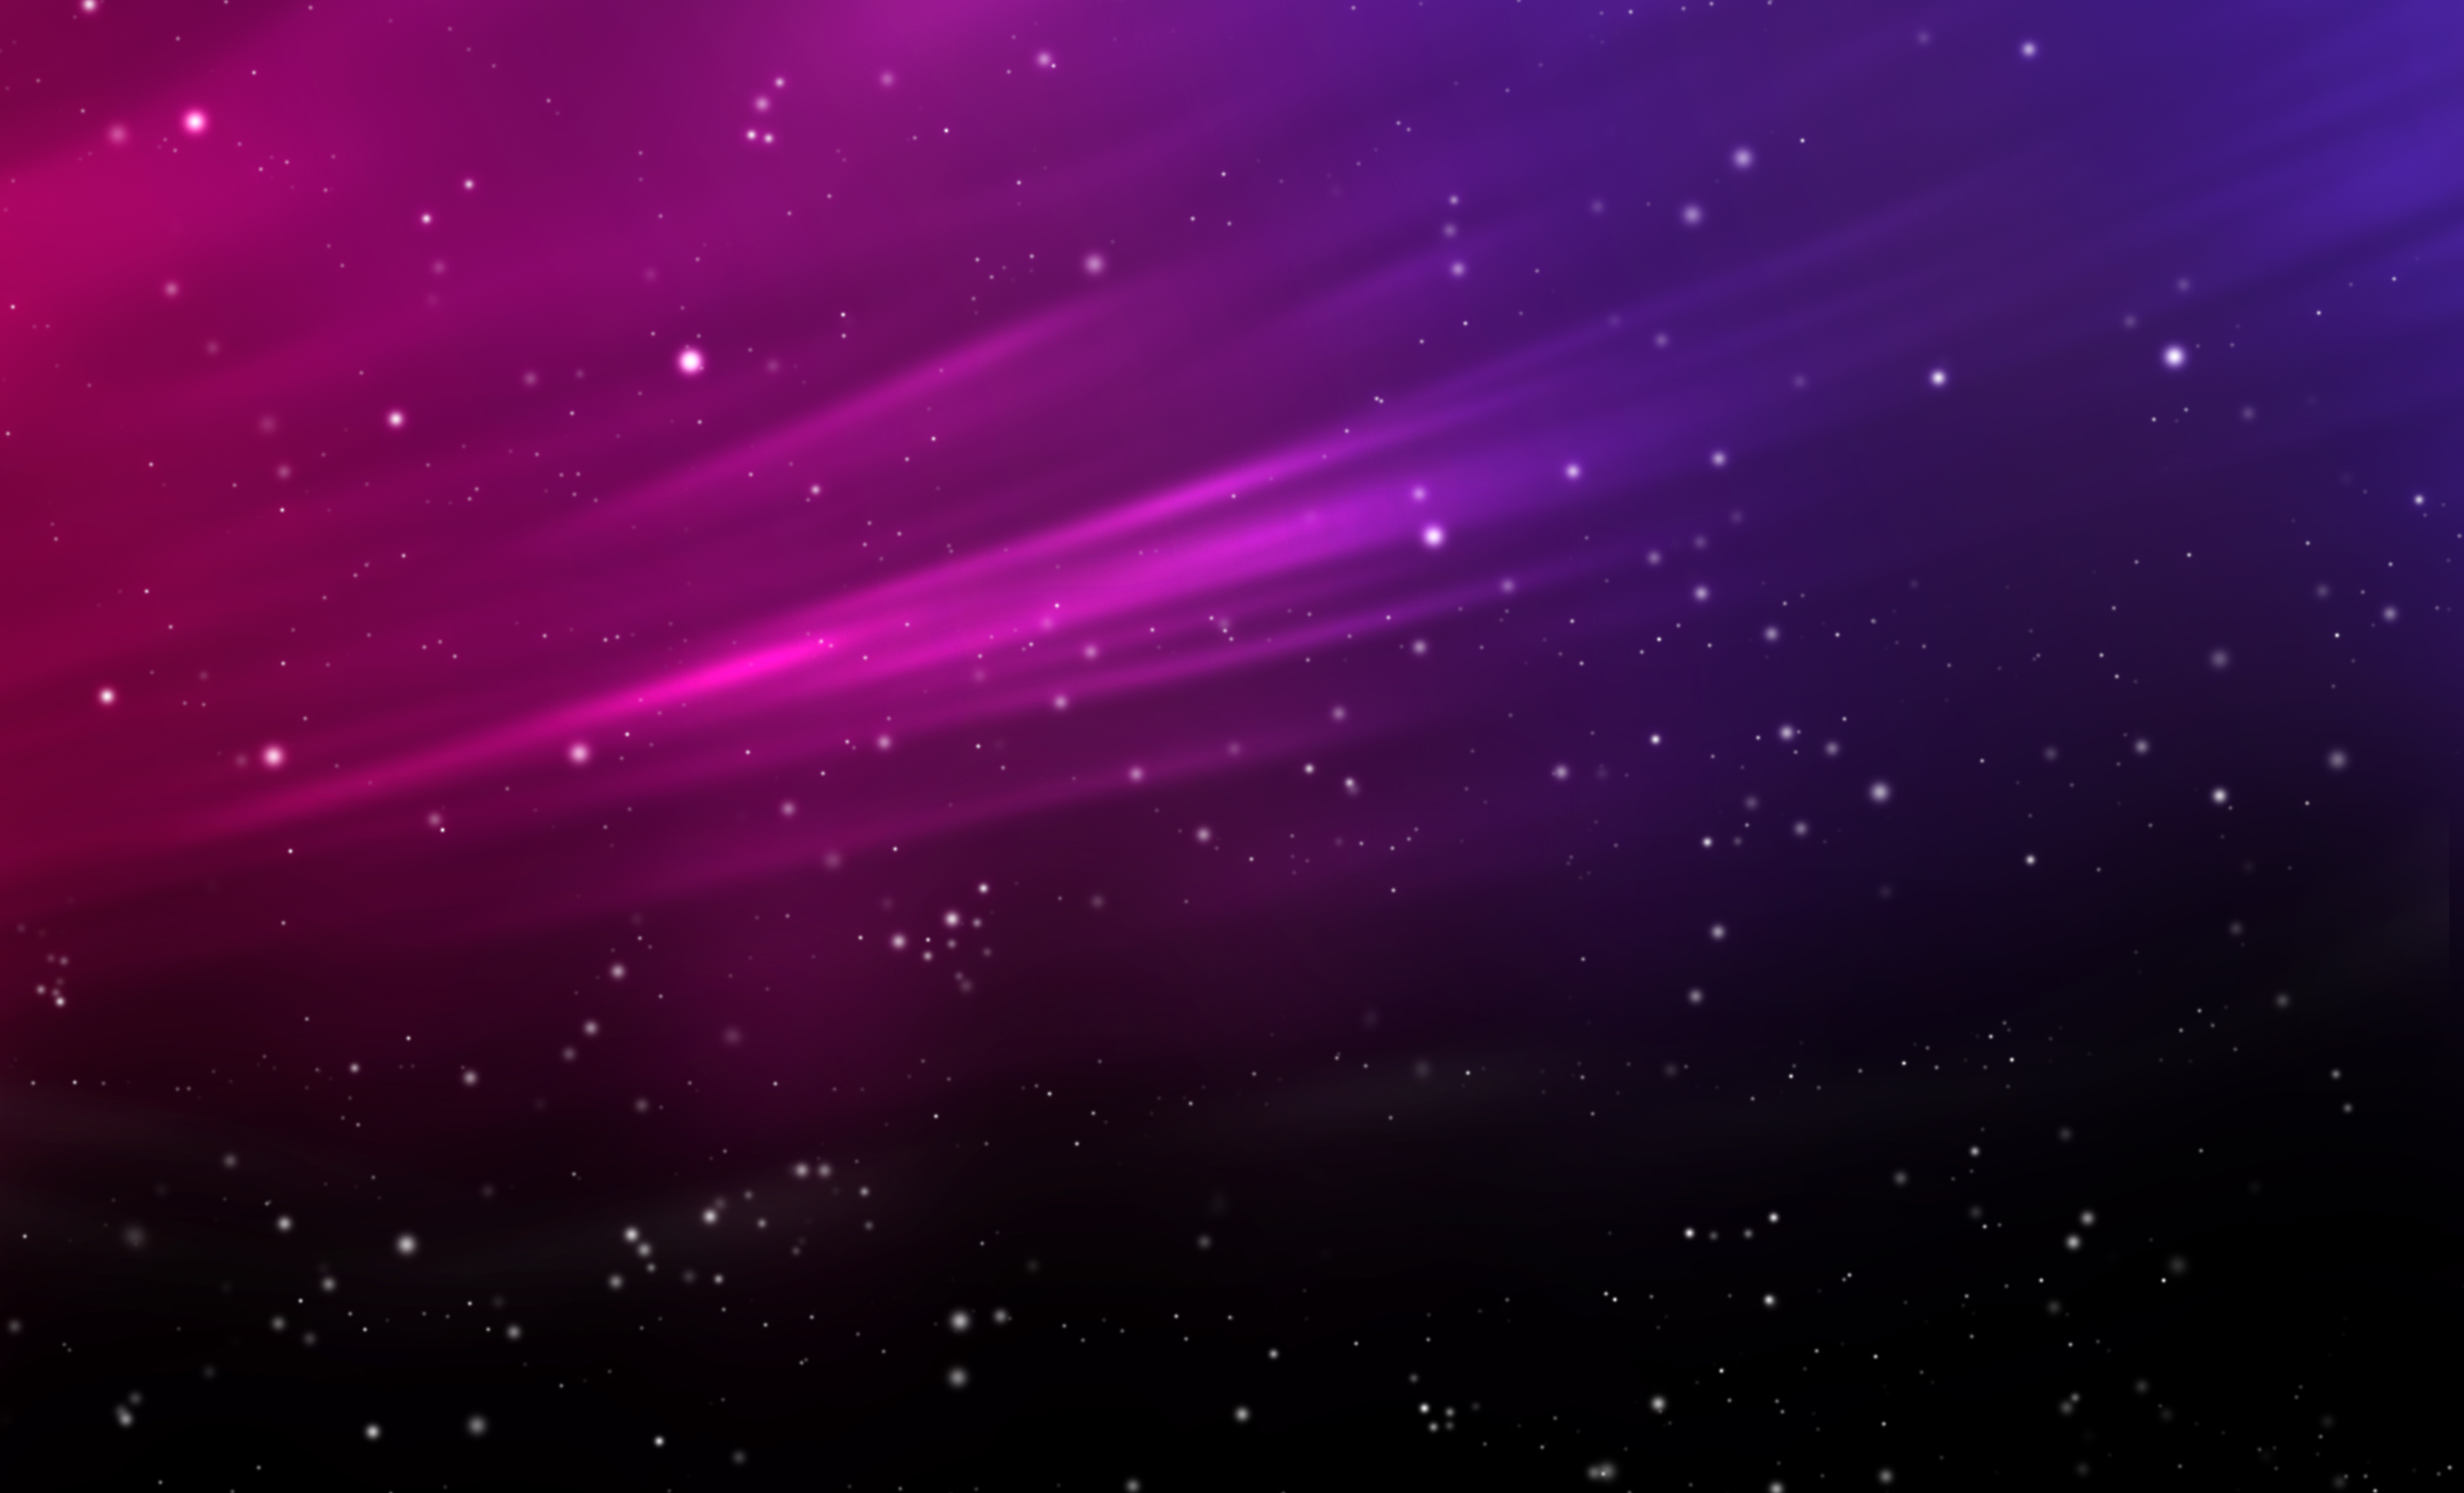 39 High Definition Purple Wallpaper Images for Download 4000x2423